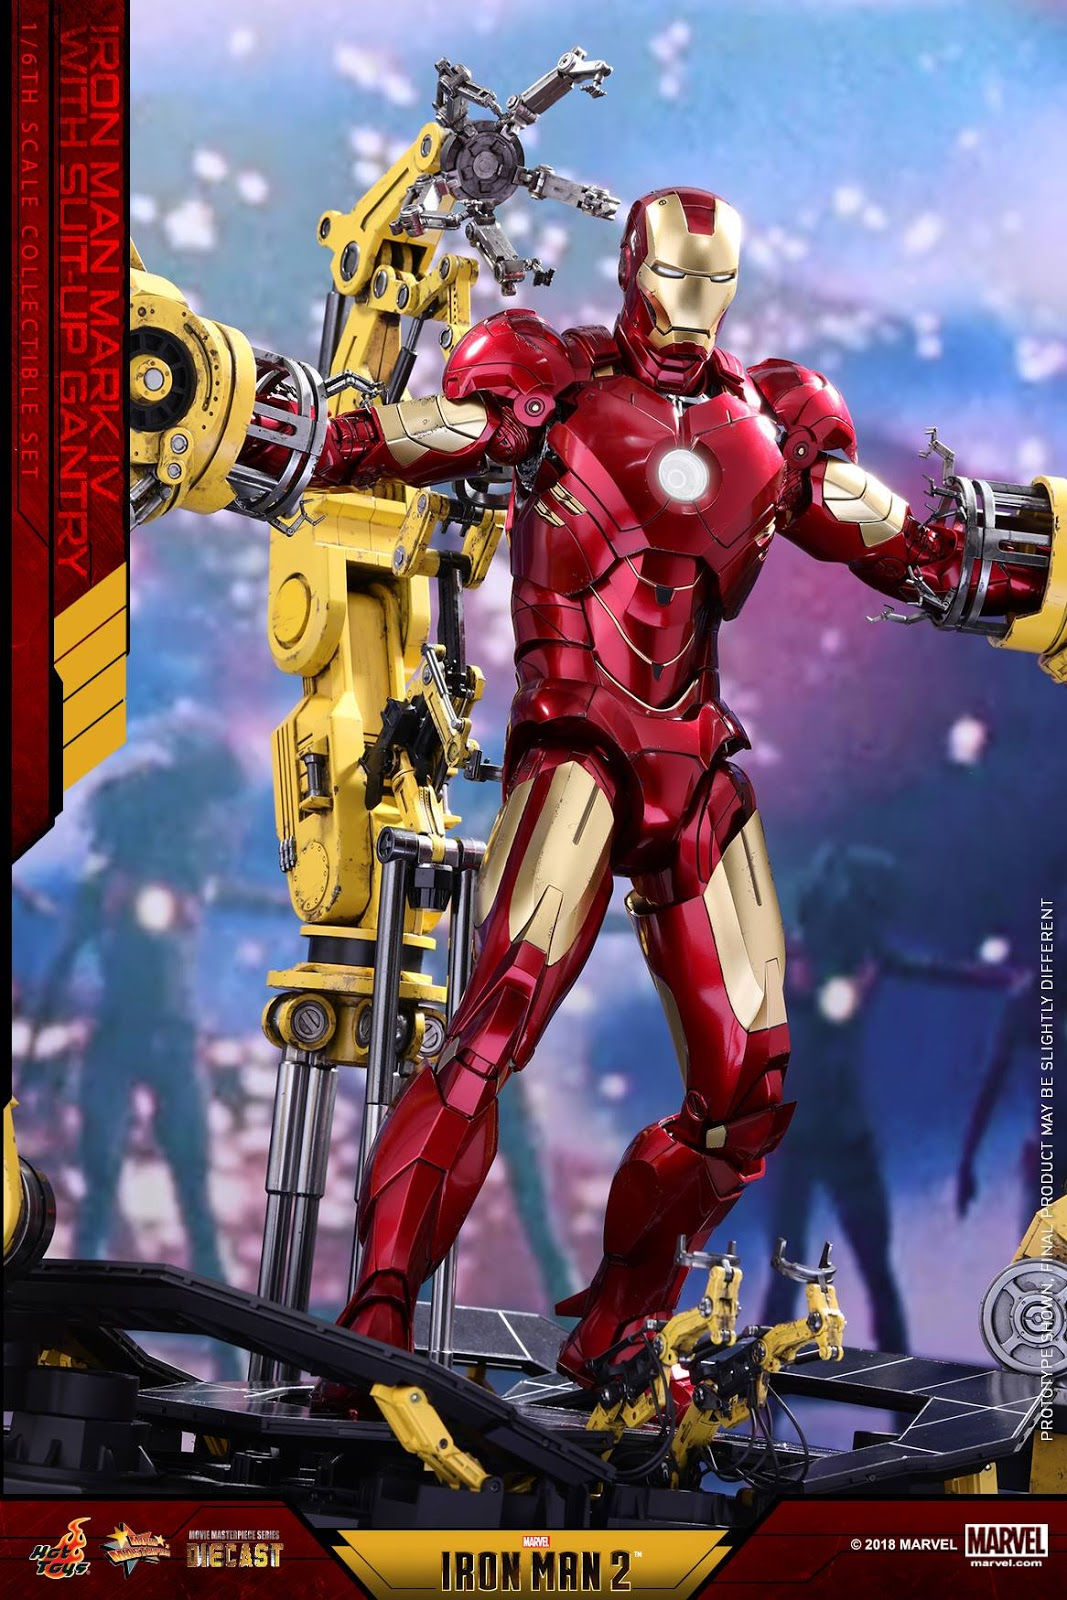 toyhaven: Hot Toys 1/6th scale Die-cast Iron Man 2 - Mark ...